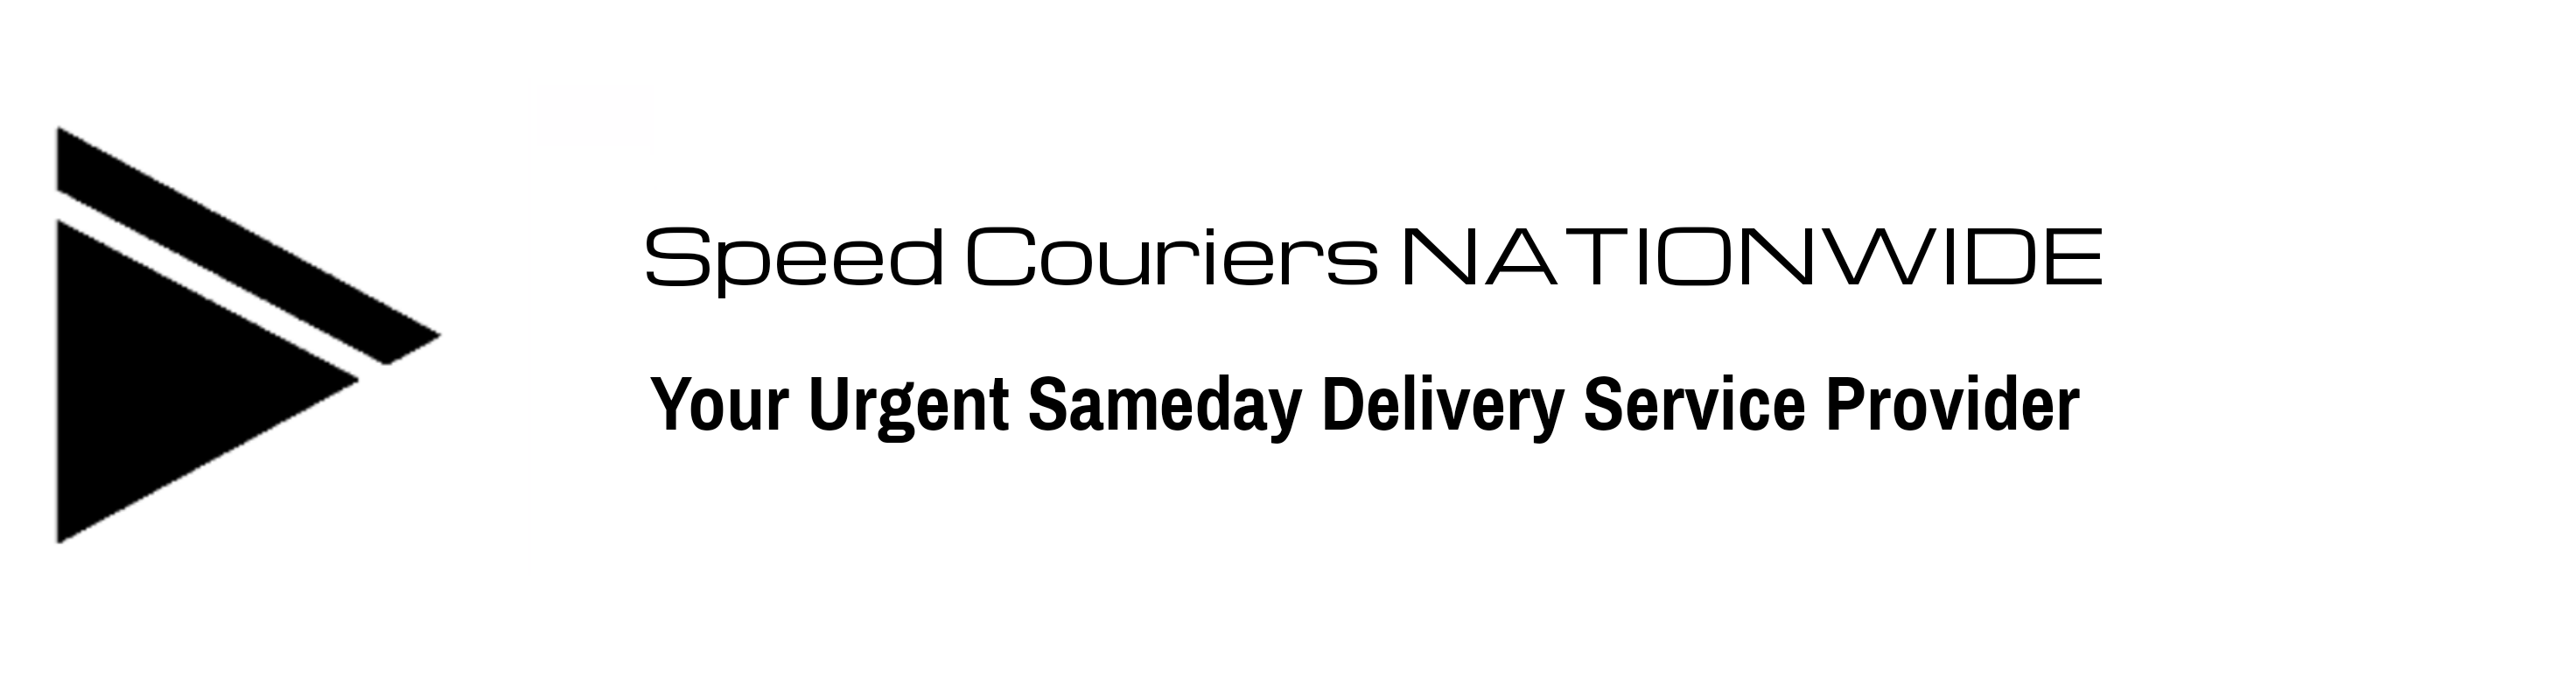 Speed Couriers Nationwide